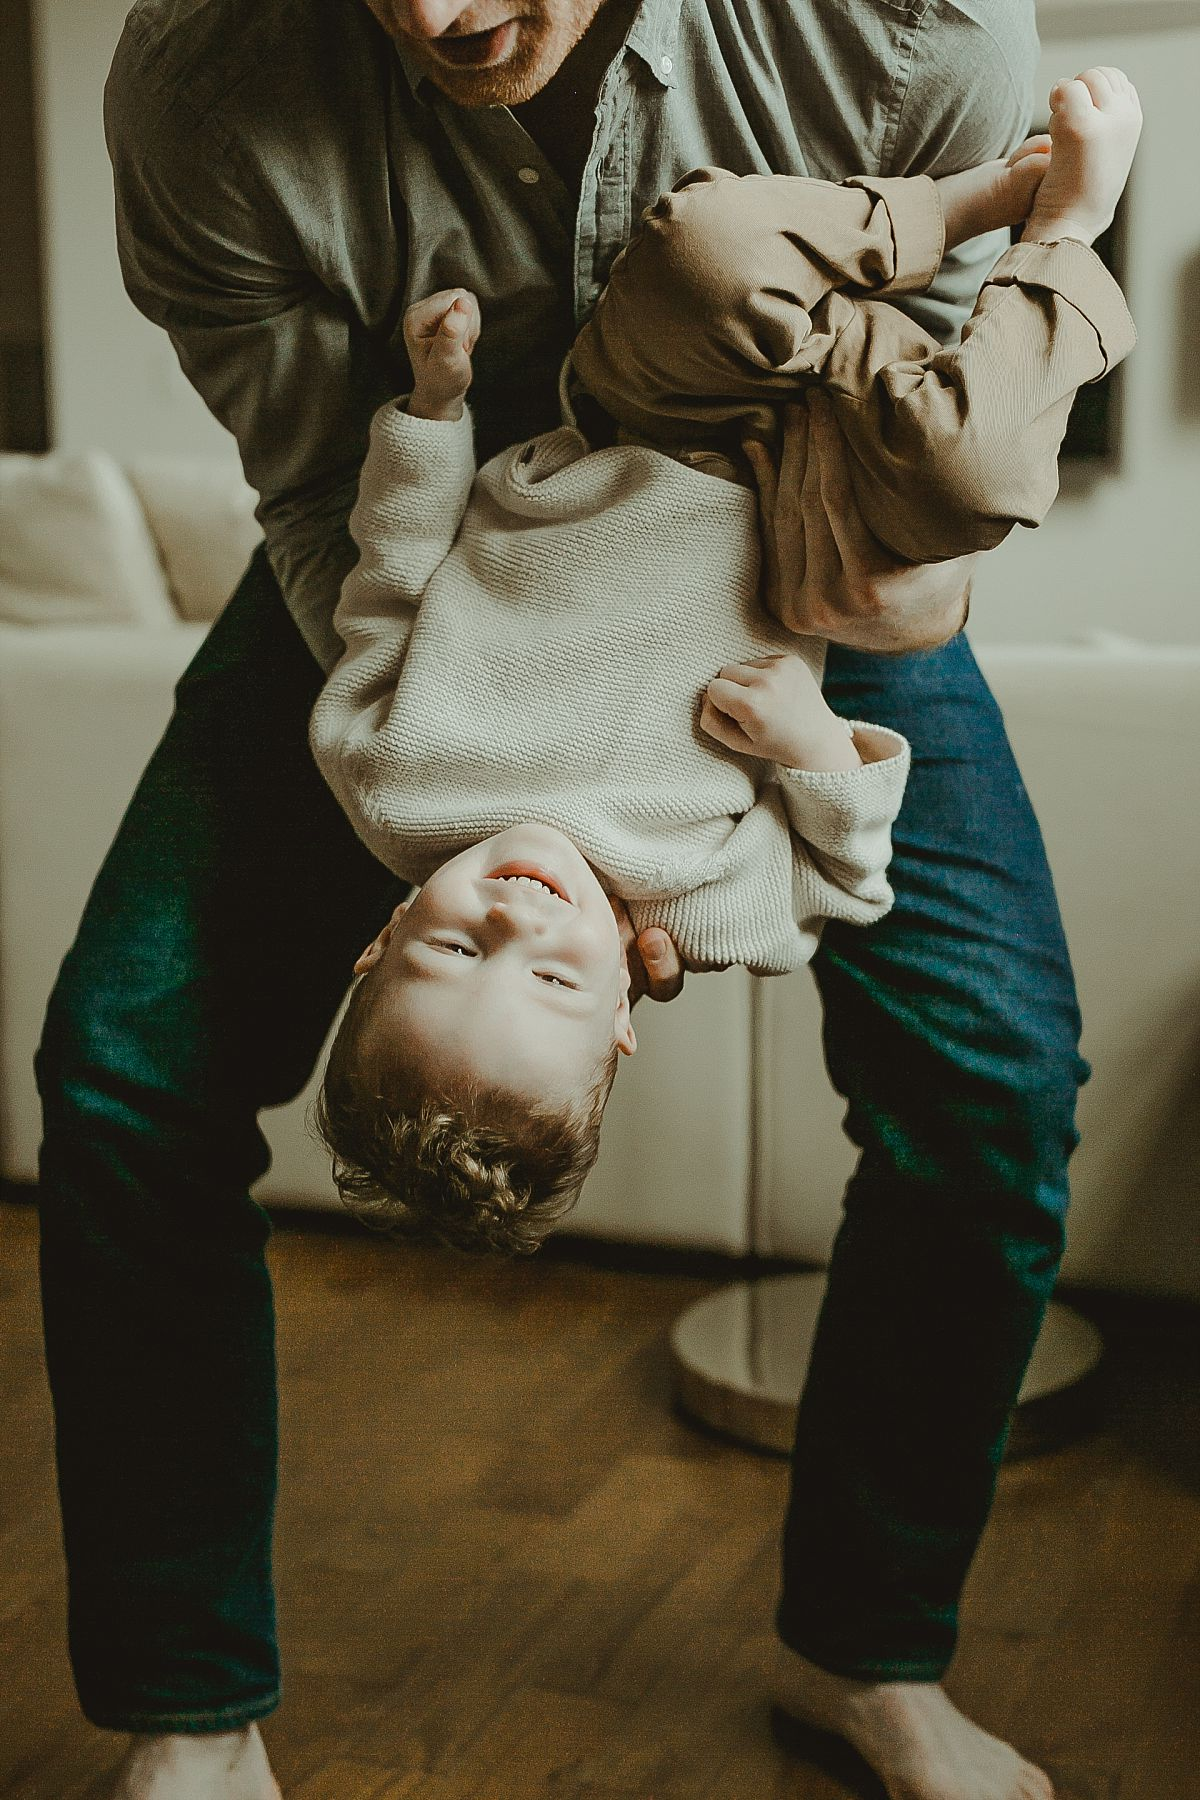 picture of dad holding son upside down while he is laughing during documentary family photo session. image by krystil mcdowall photography